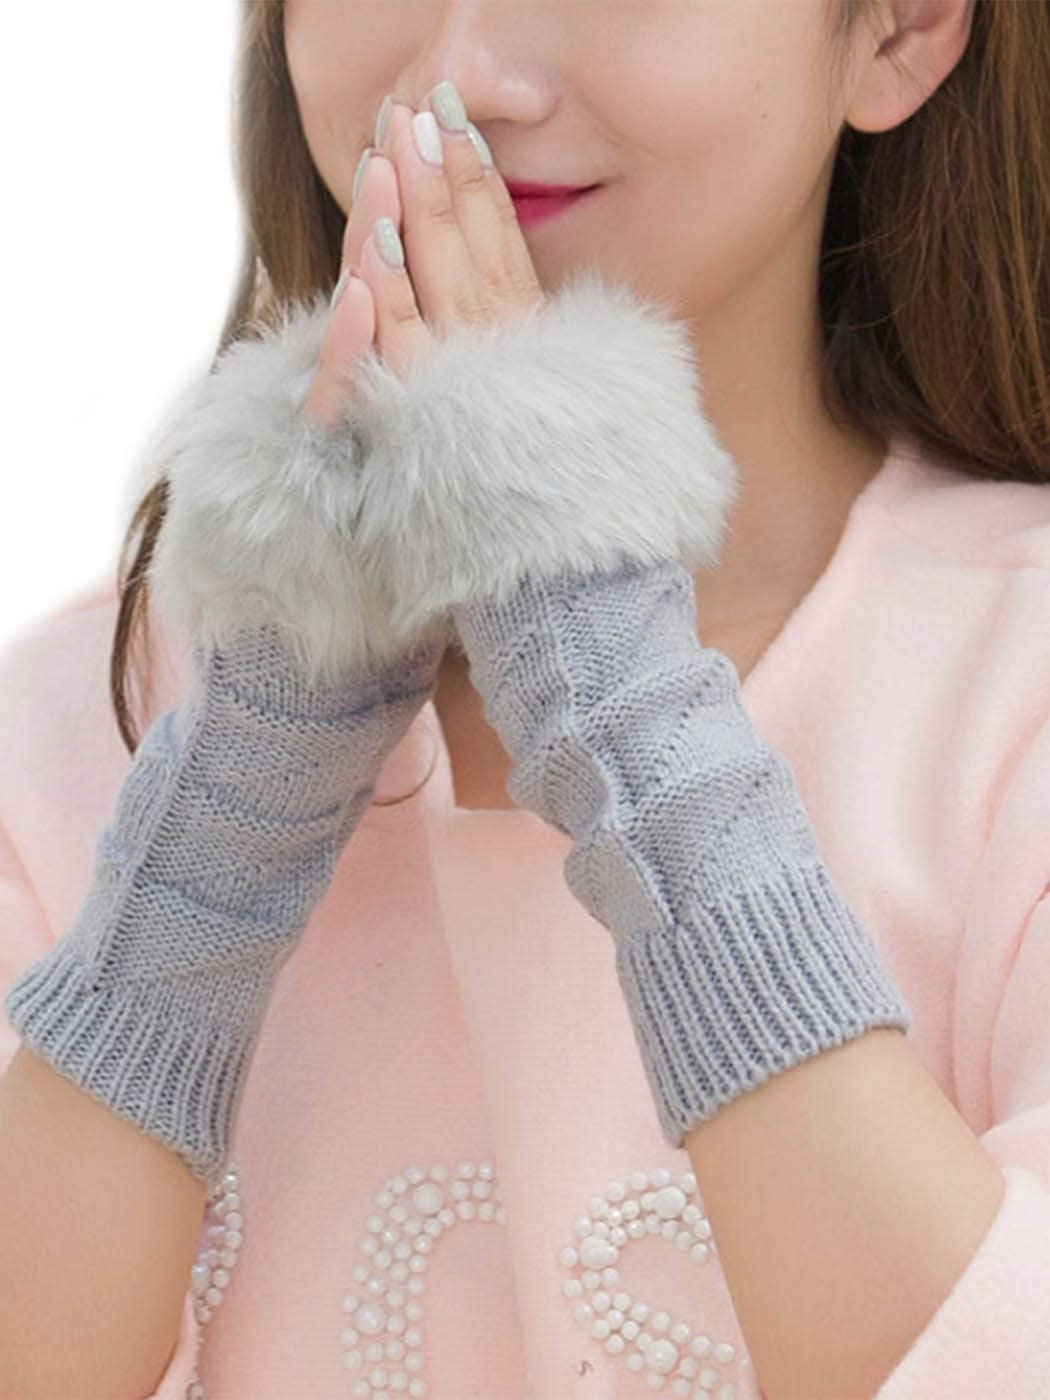 Simsly Womens Winter Faux Fur Gloves Knit Wrist Warmer Fingerless Mittens Thumb Hole Gloves for Winter (Light gray)